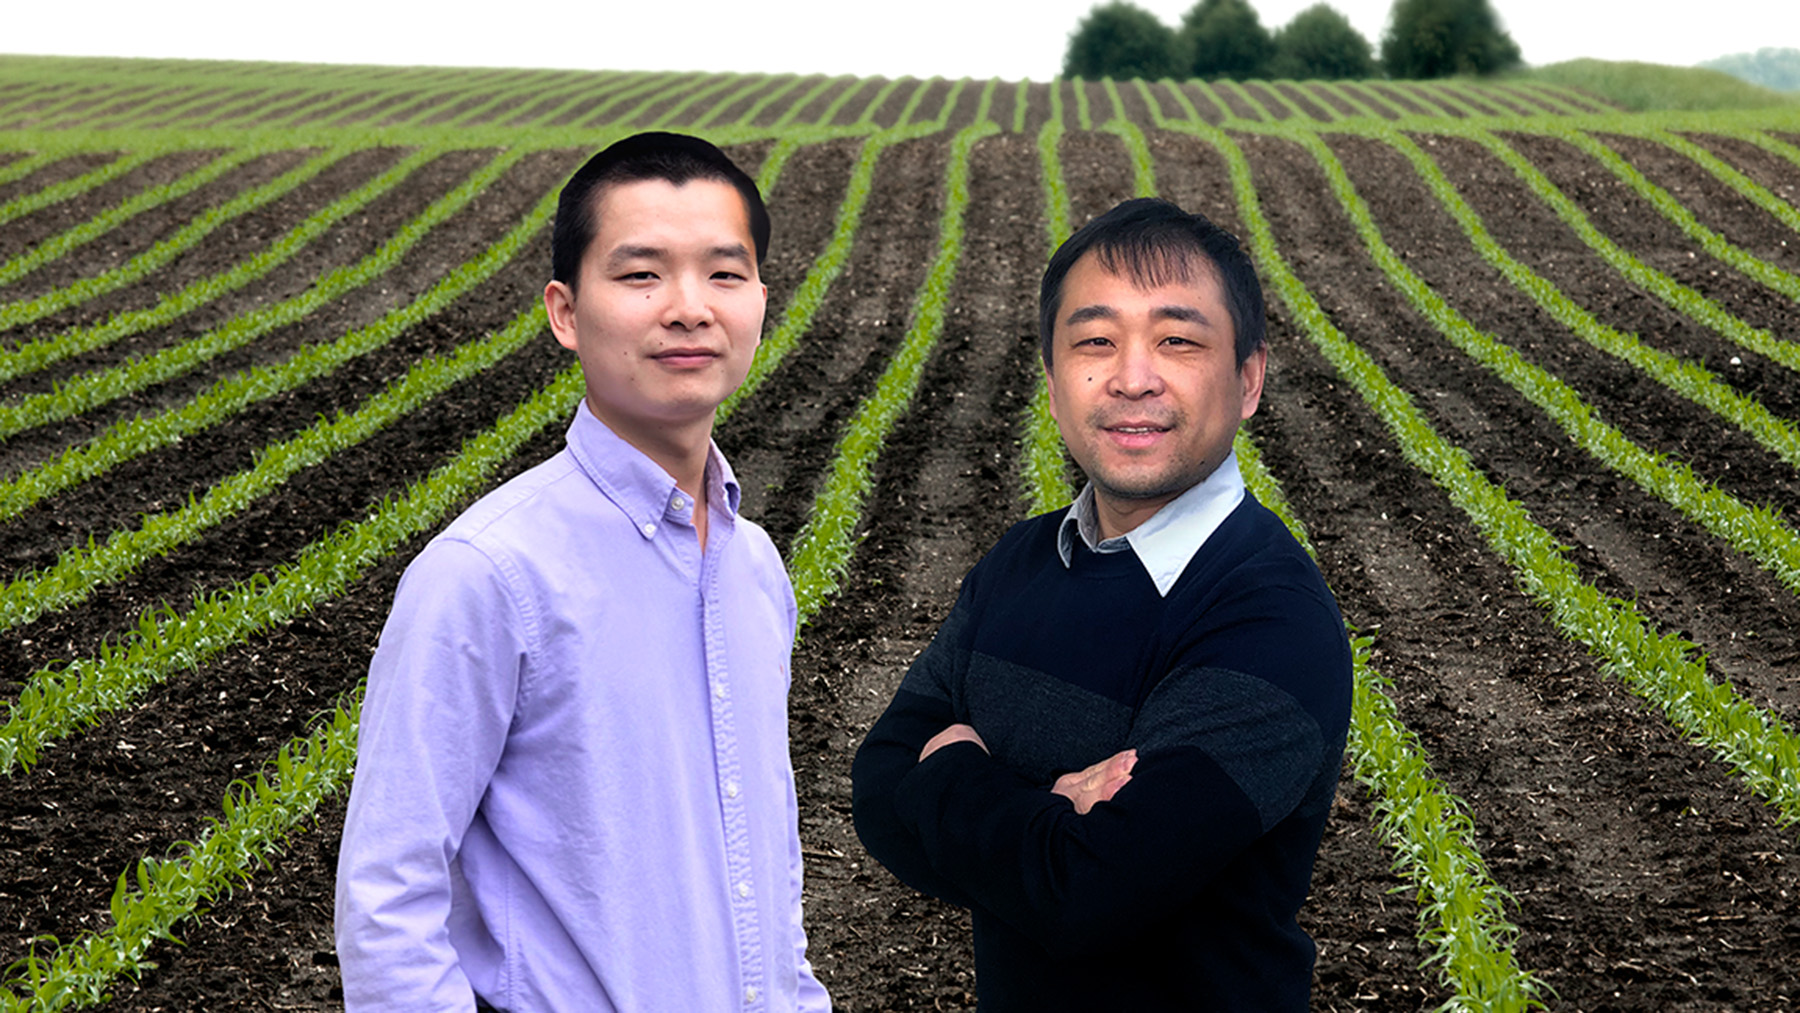 Researchers Bin Peng, left, and Kaiyu Guan led a large, multi-institutional study that calls for a better representation of plant genetics data in the models used to understand crop adaptation and food security during climate change.  Photo illustration by Fred Zwicky